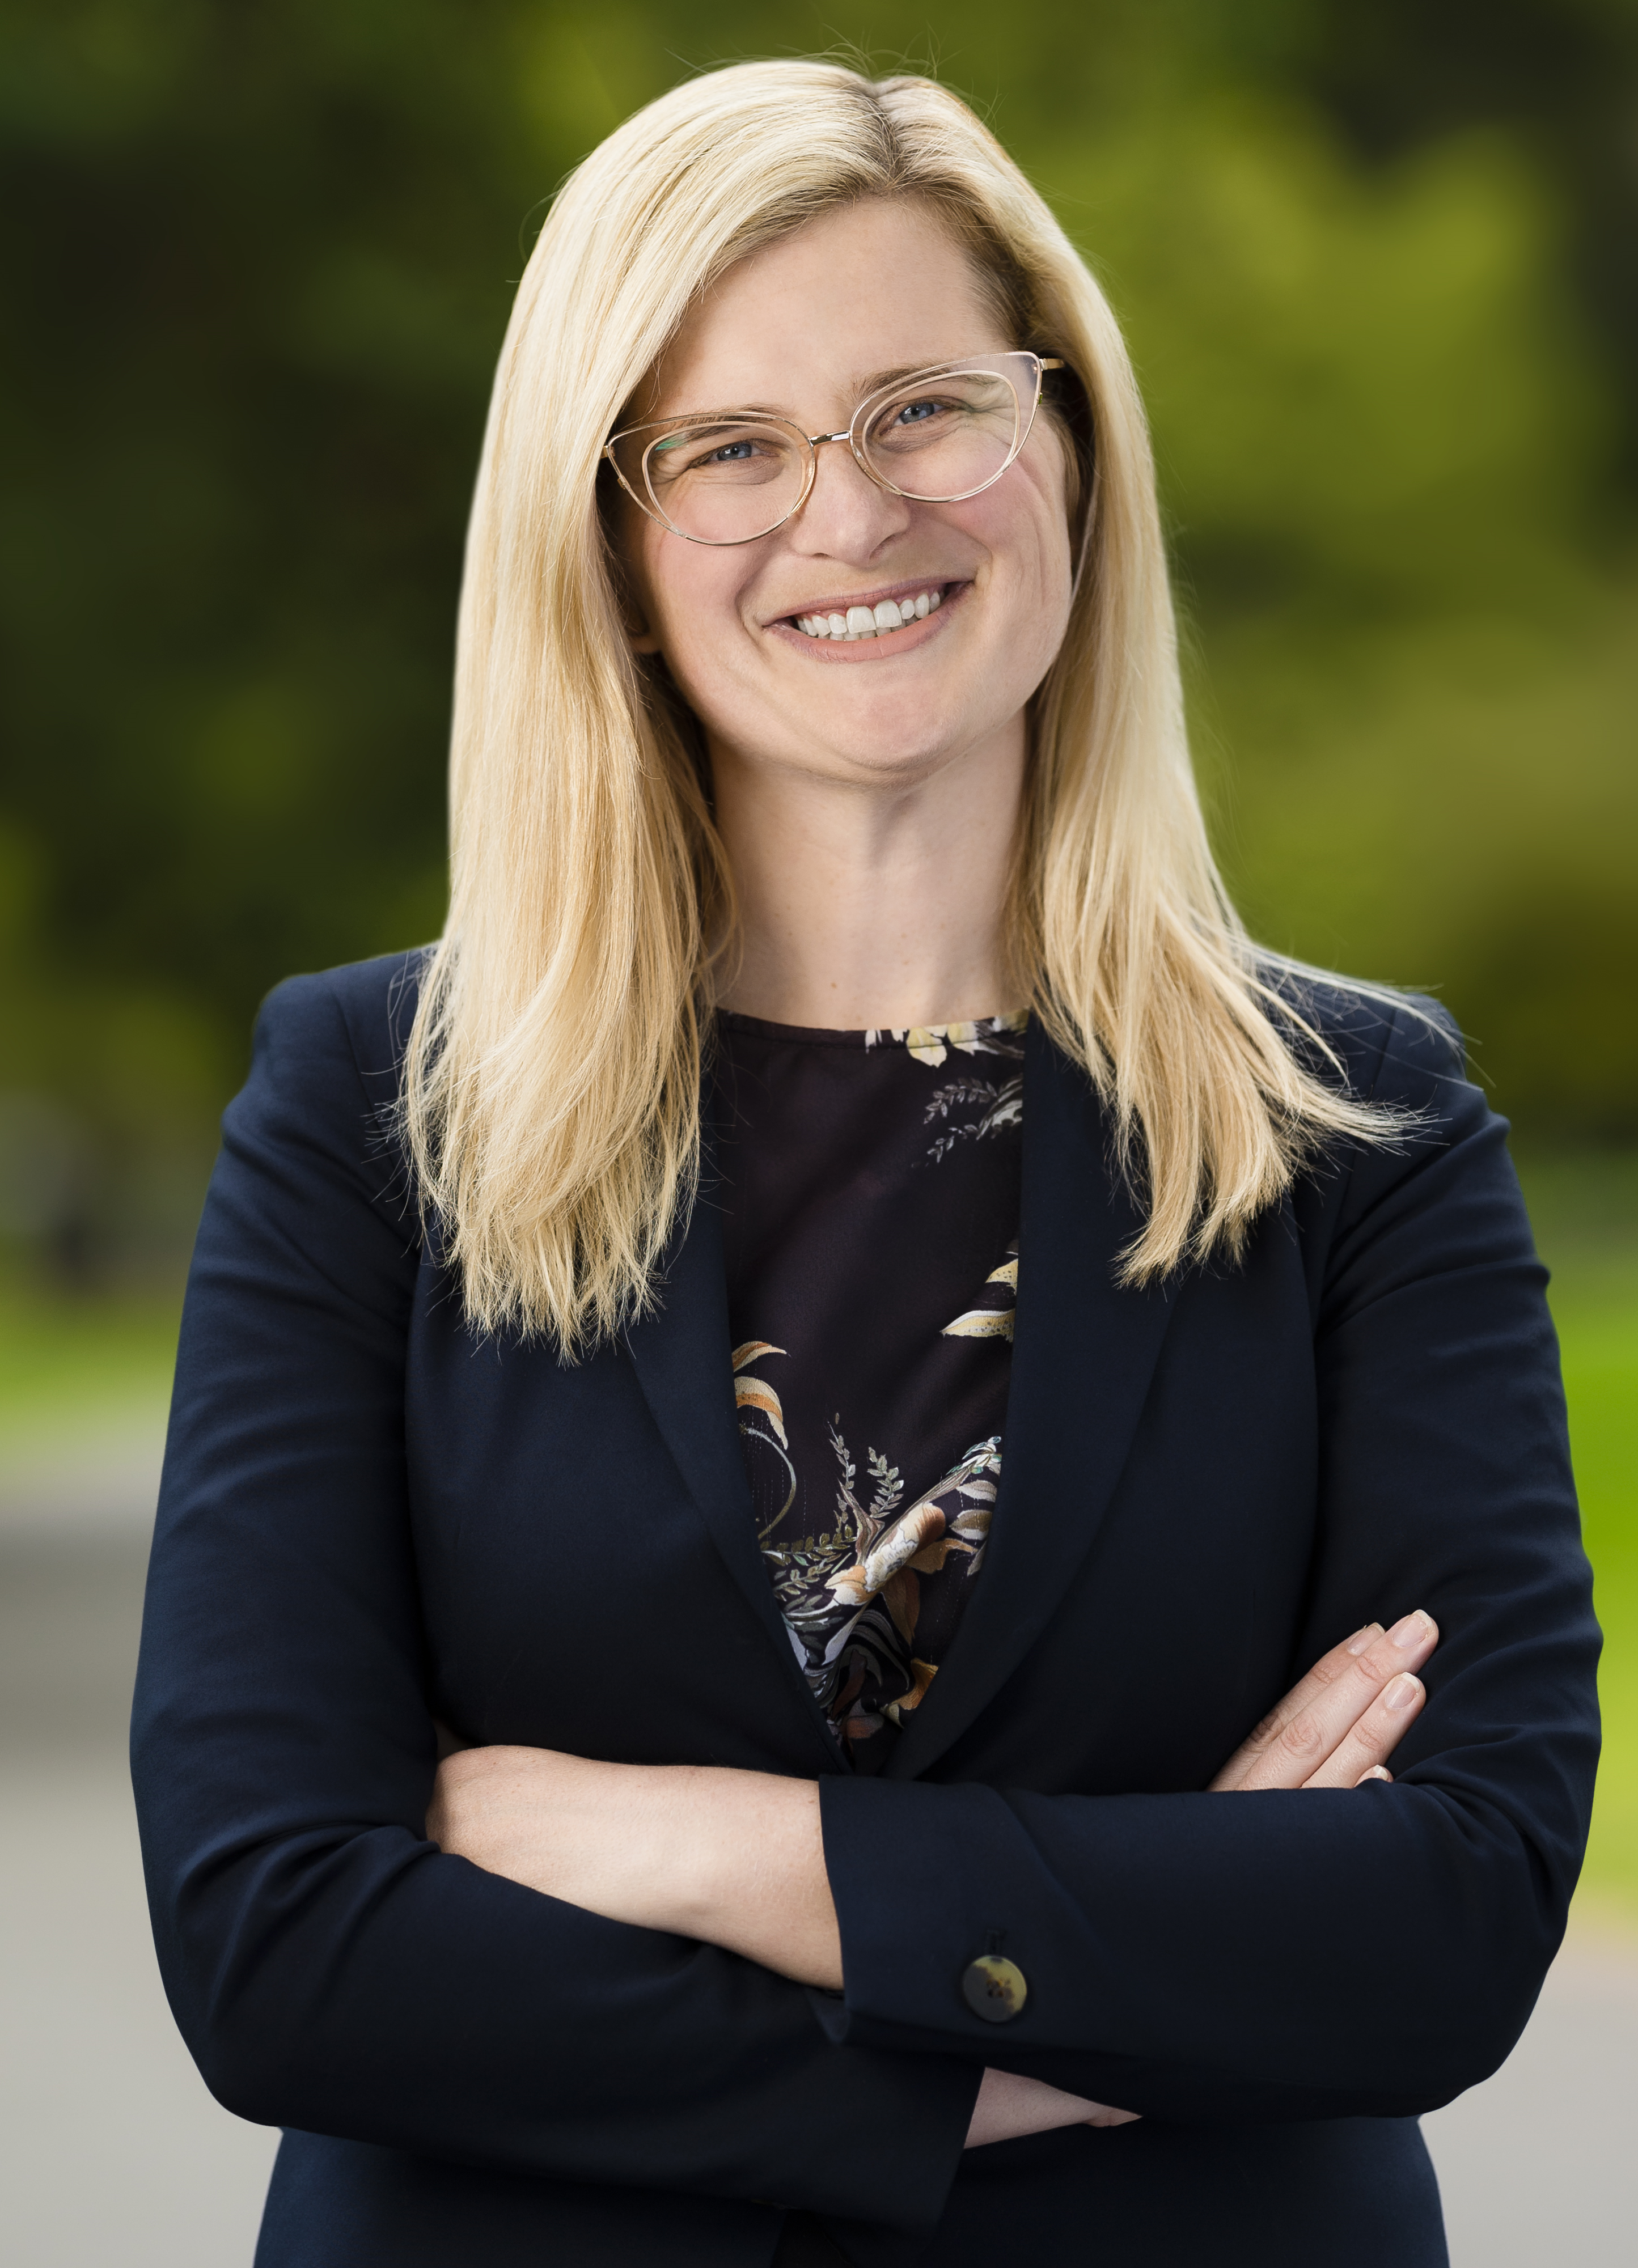 Councillor for Darebin and candidate for Preston, Susanne Newton